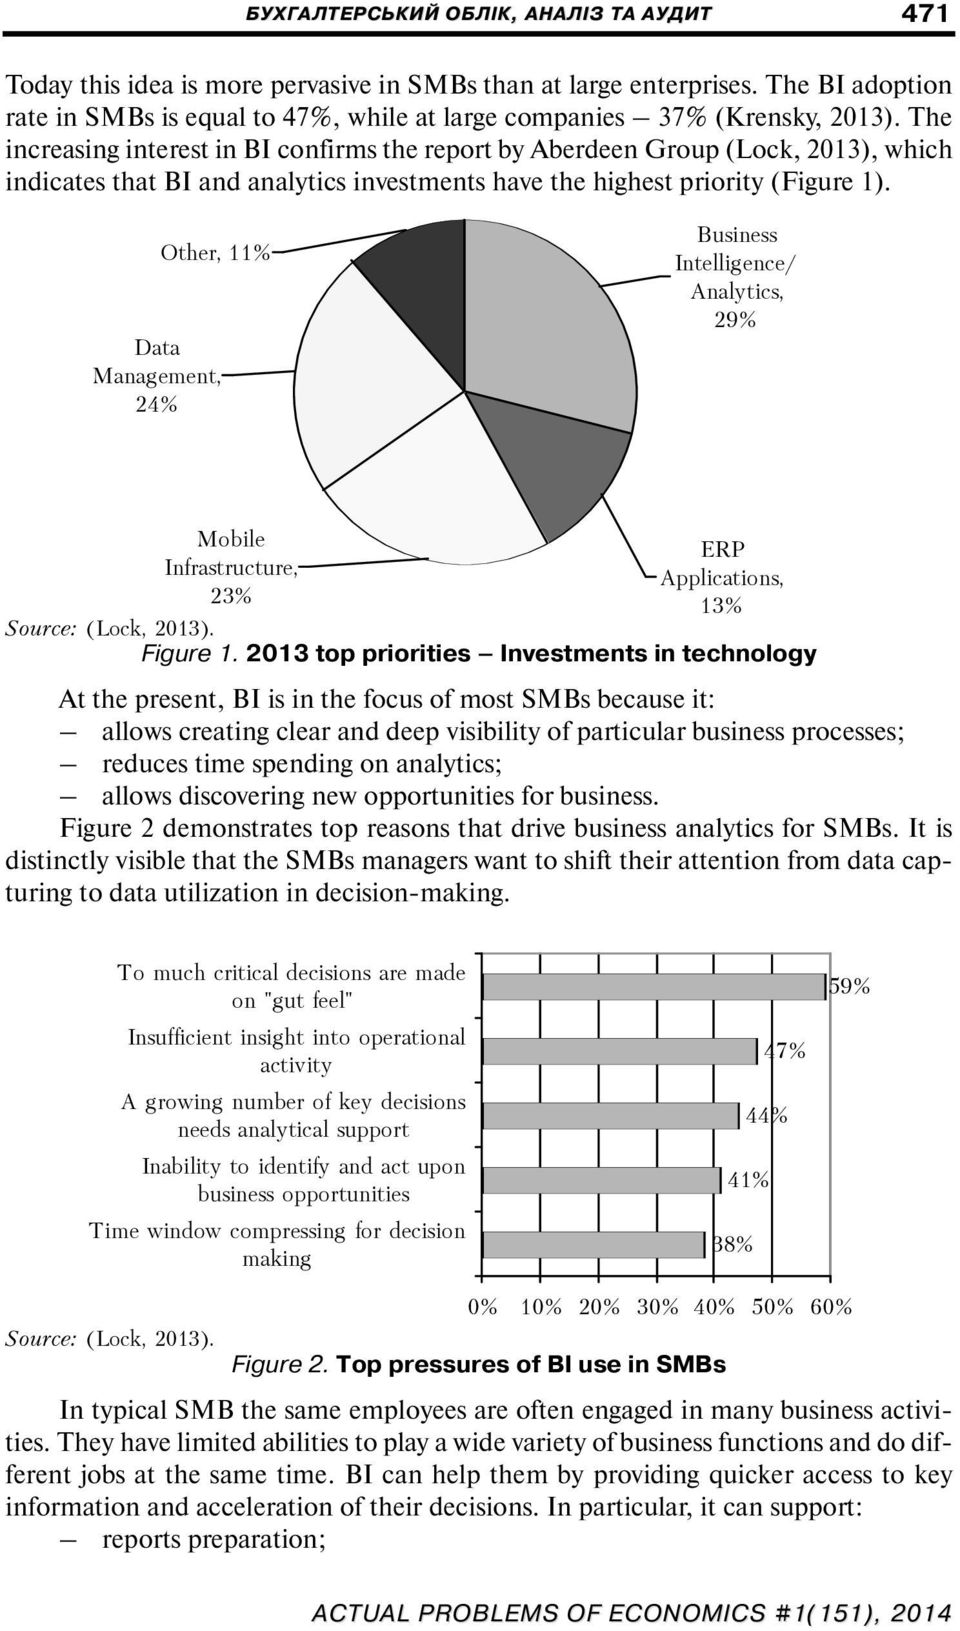 The increasing interest in BI confirms the report by Aberdeen Group (Lock, 2013), which indicates that BI and analytics investments have the highest priority (Figure 1).